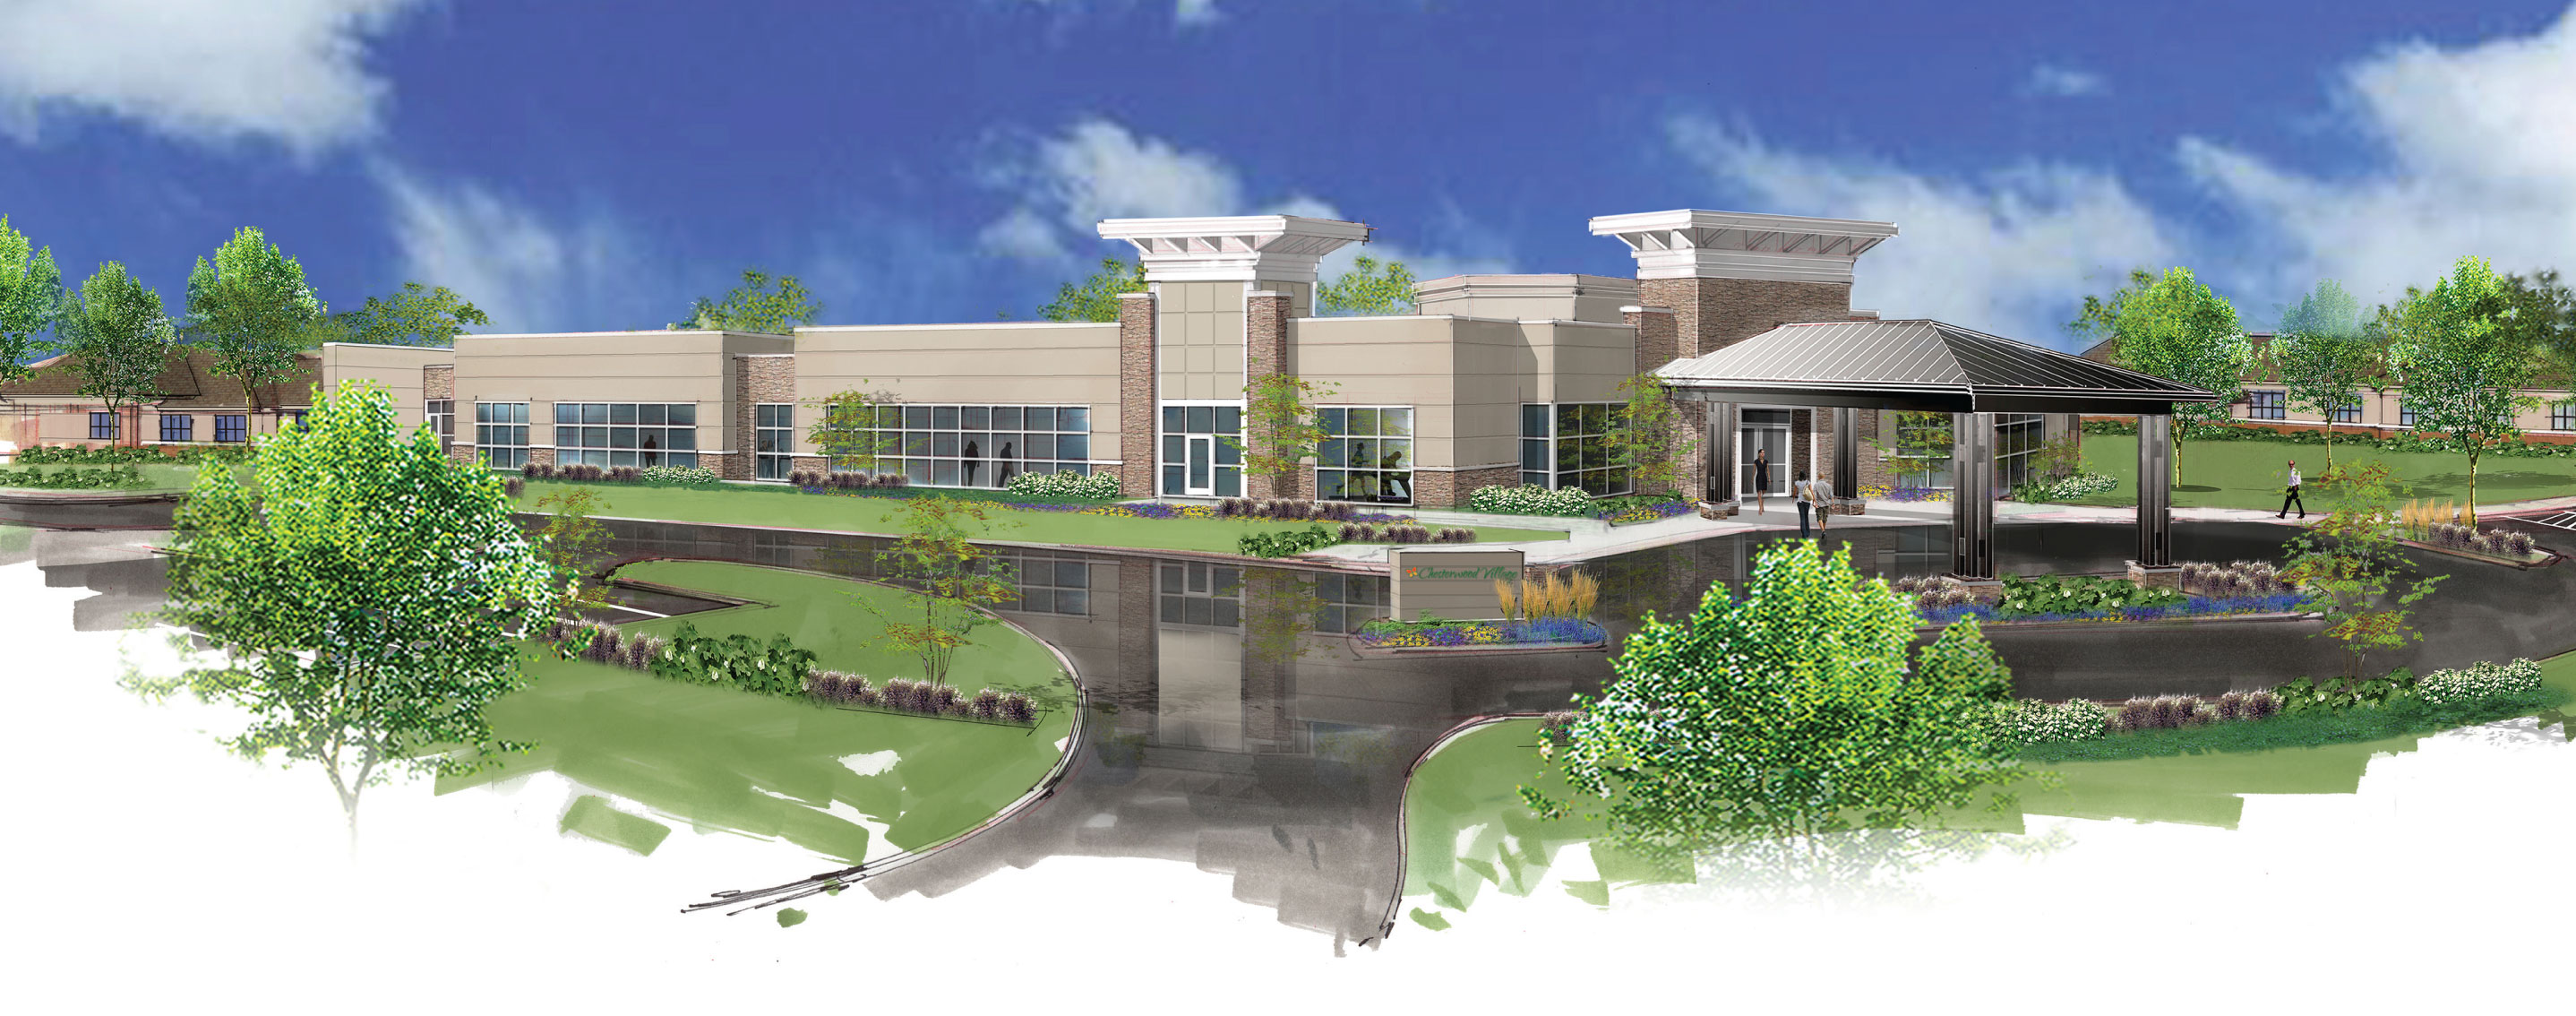 Advanced-Therapy-Center | Hillandale Communities